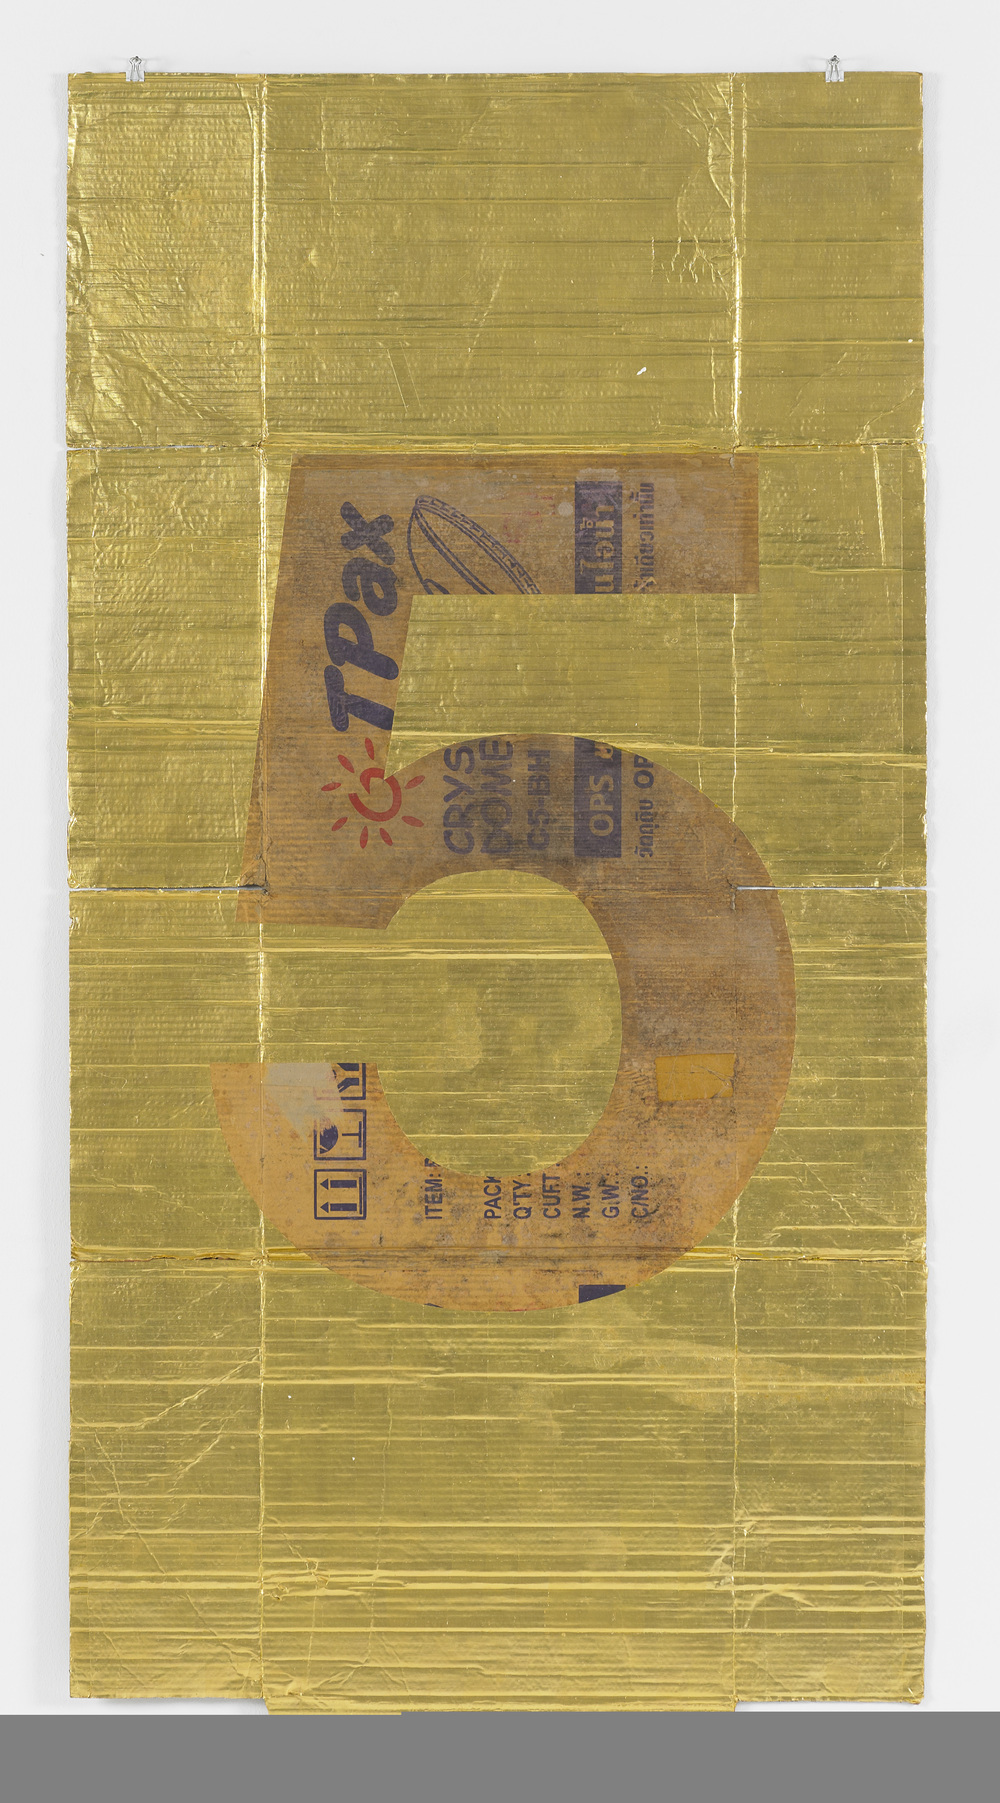 DANH VO  NUMBERS (5), 2011  GOLD LEAF ON CARDBOARD  35.5 X 79 IN  COURTESY DANIEL BUCHHOLZ, BERLIN